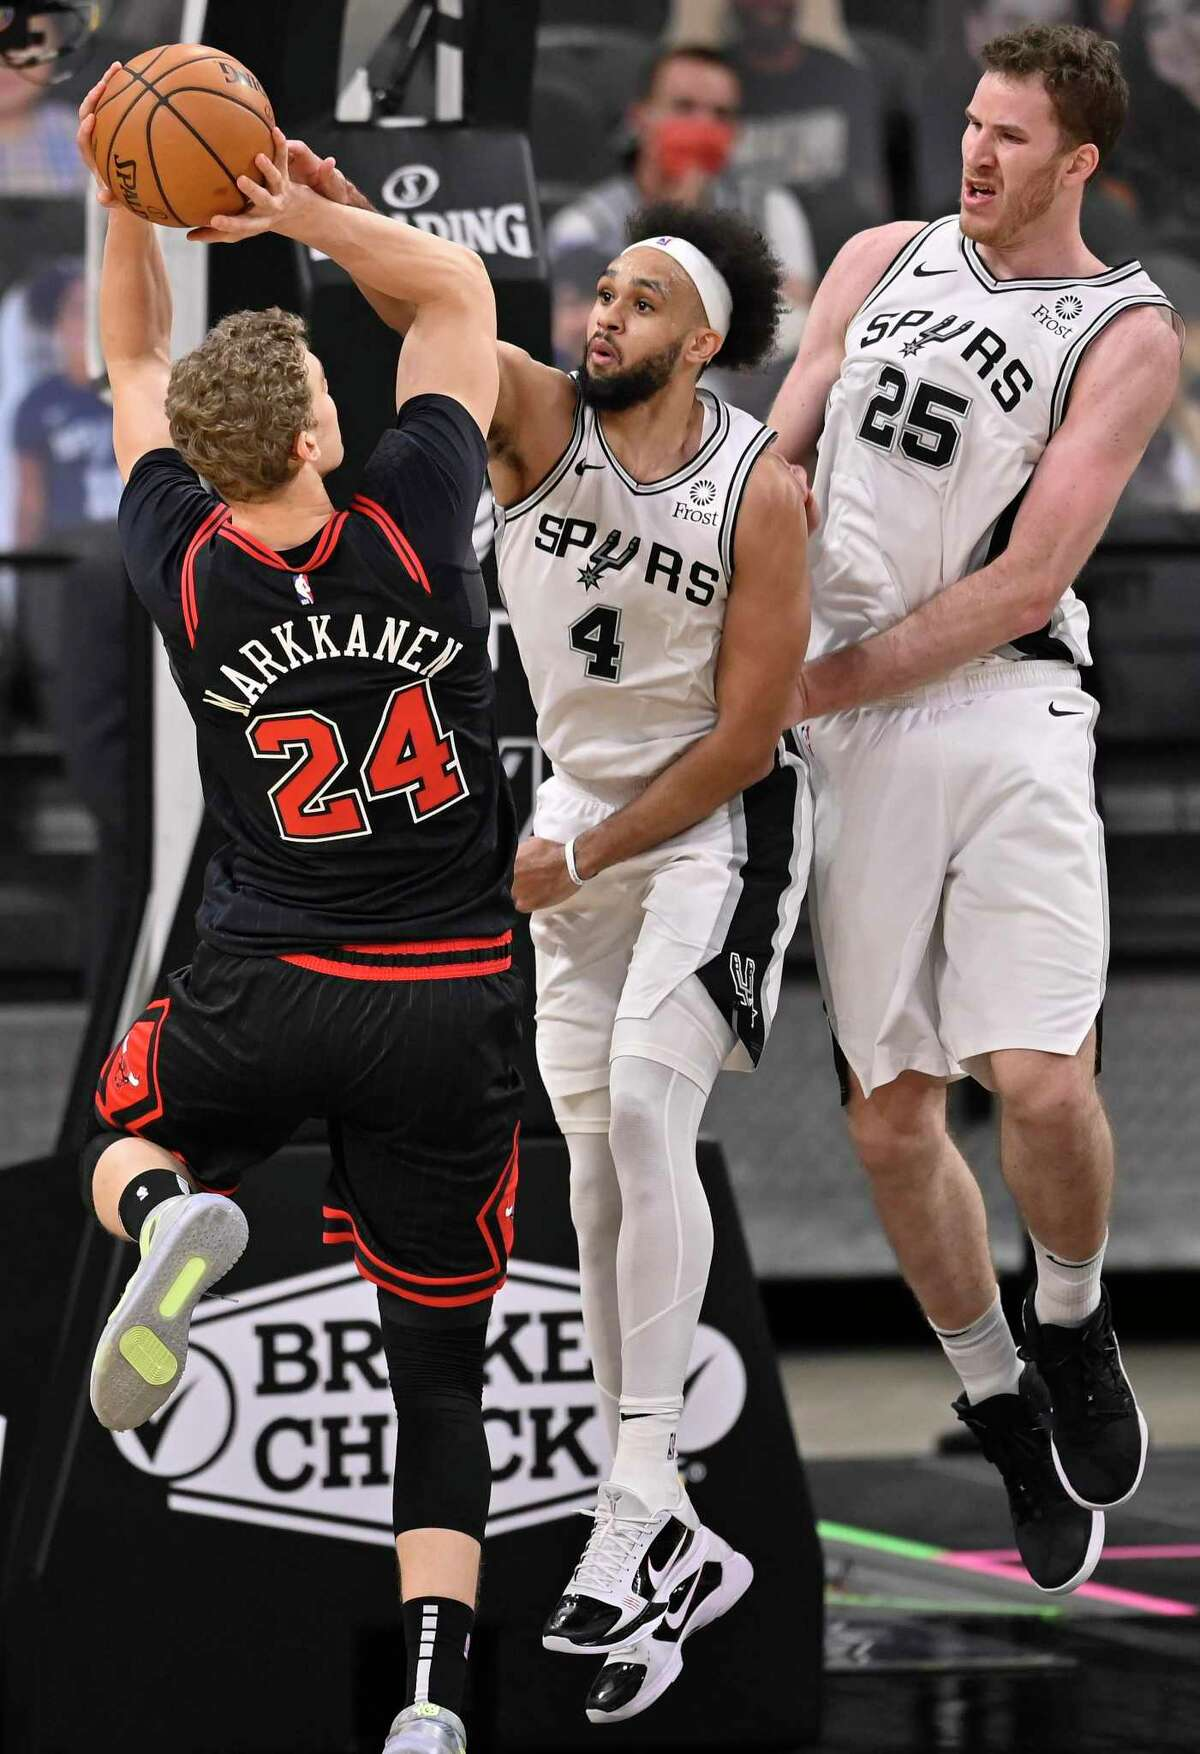 Derrick White (4), trying to block the Bulls' Lauri Markkanen, routinely sacrifices his body - and teeth - on defense.